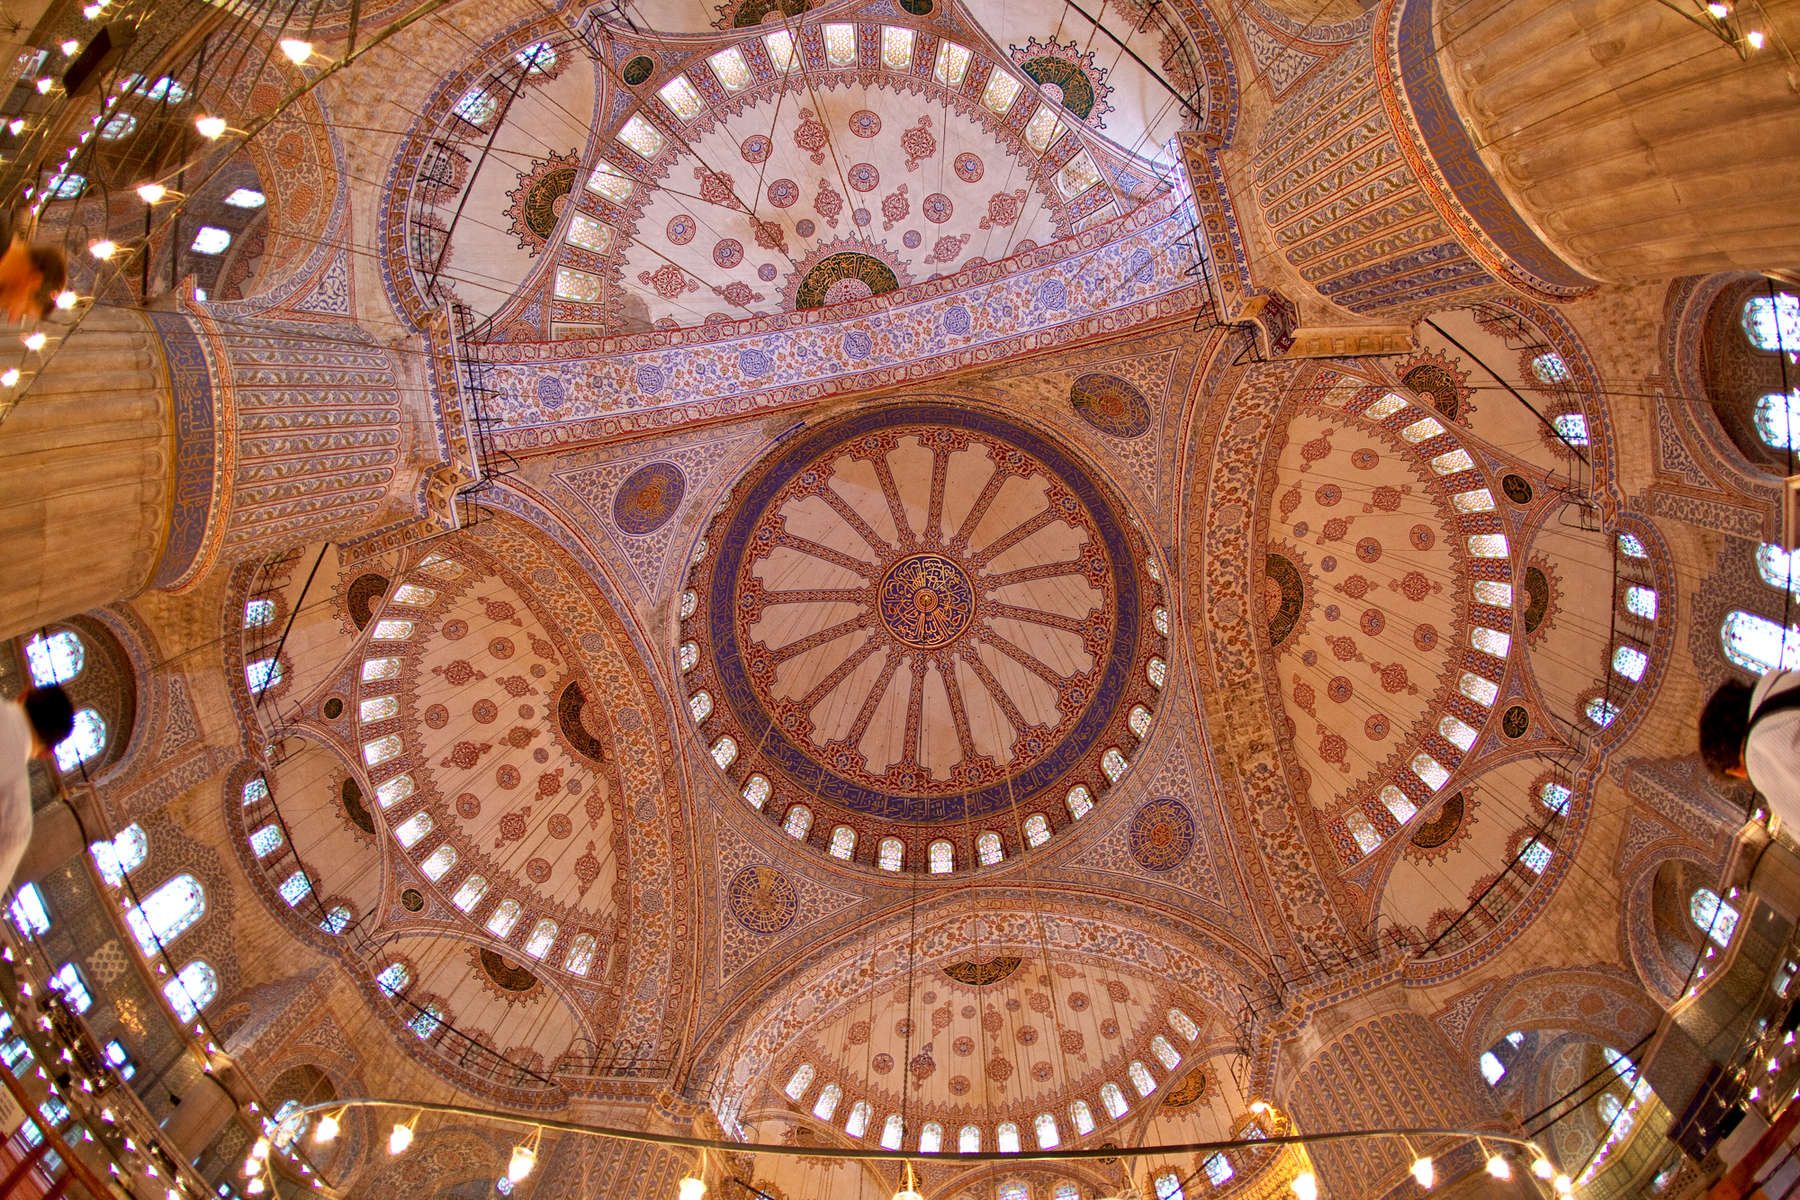 Interior of the 16th century Blue Mosque.